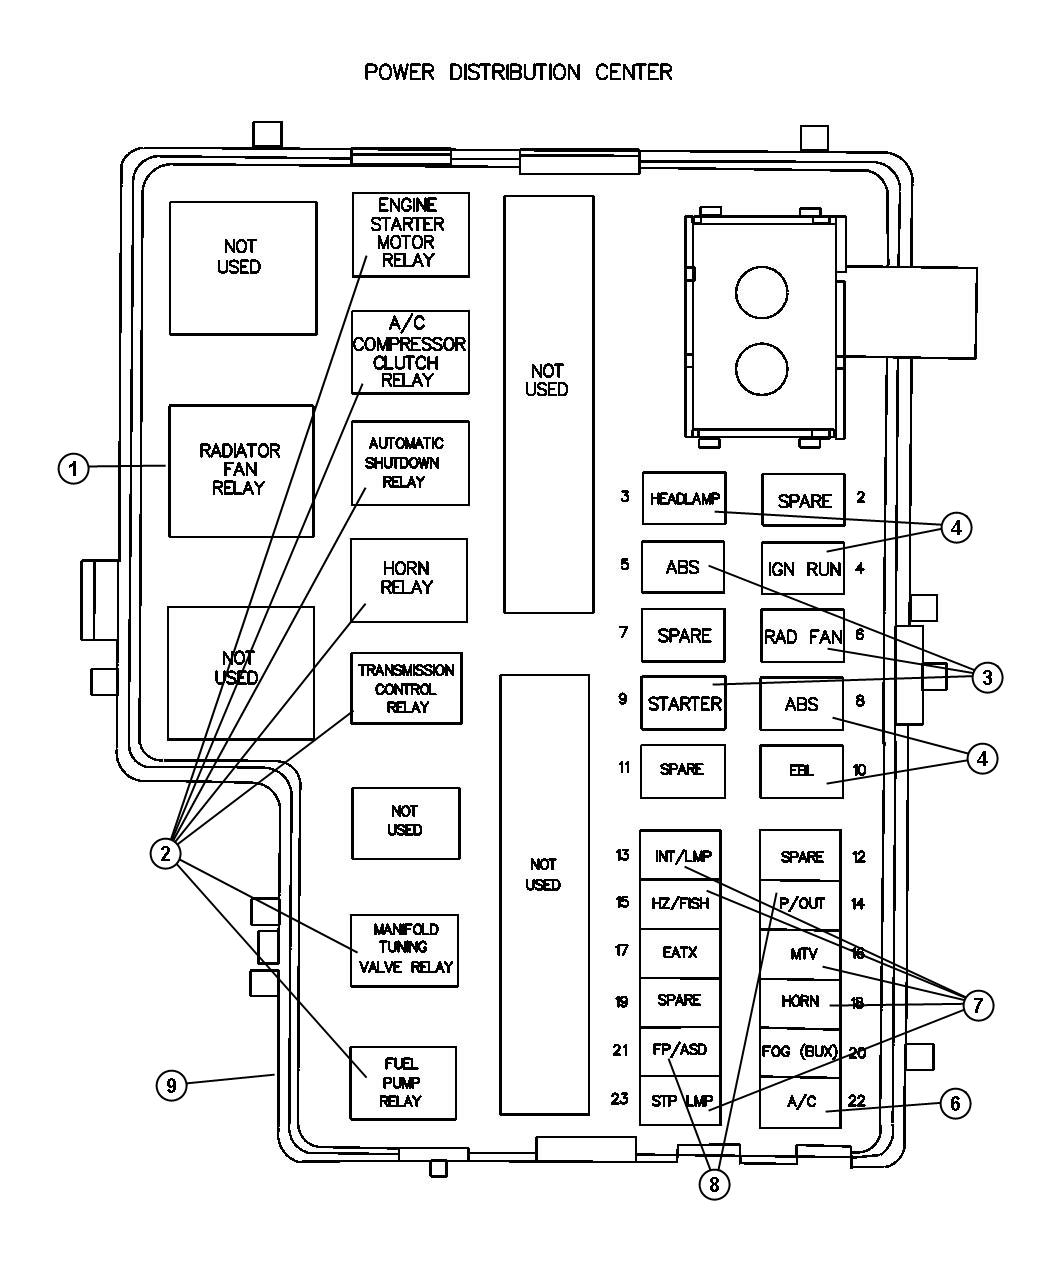 00i43789 wiring diagram for 1997 dodge neon ireleast readingrat net 2001 dodge neon fuse box diagram at readyjetset.co